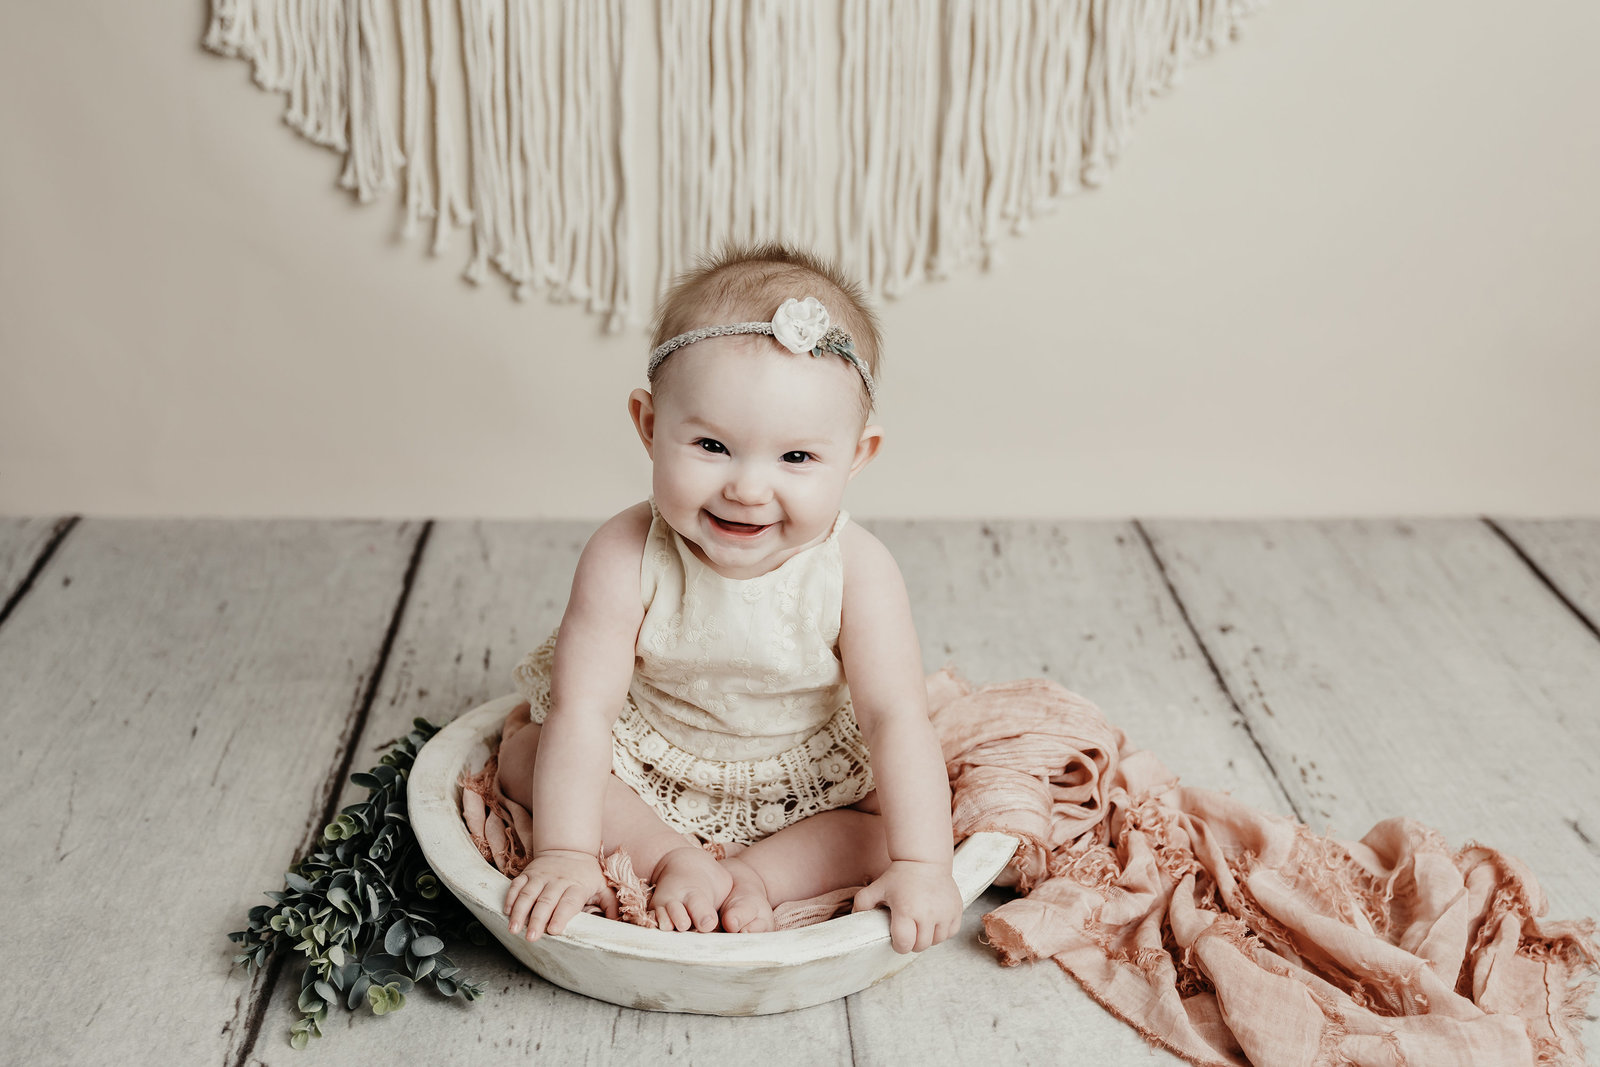 Karis 6 Month Sitter Session baby photographer Valerie Clement Photography